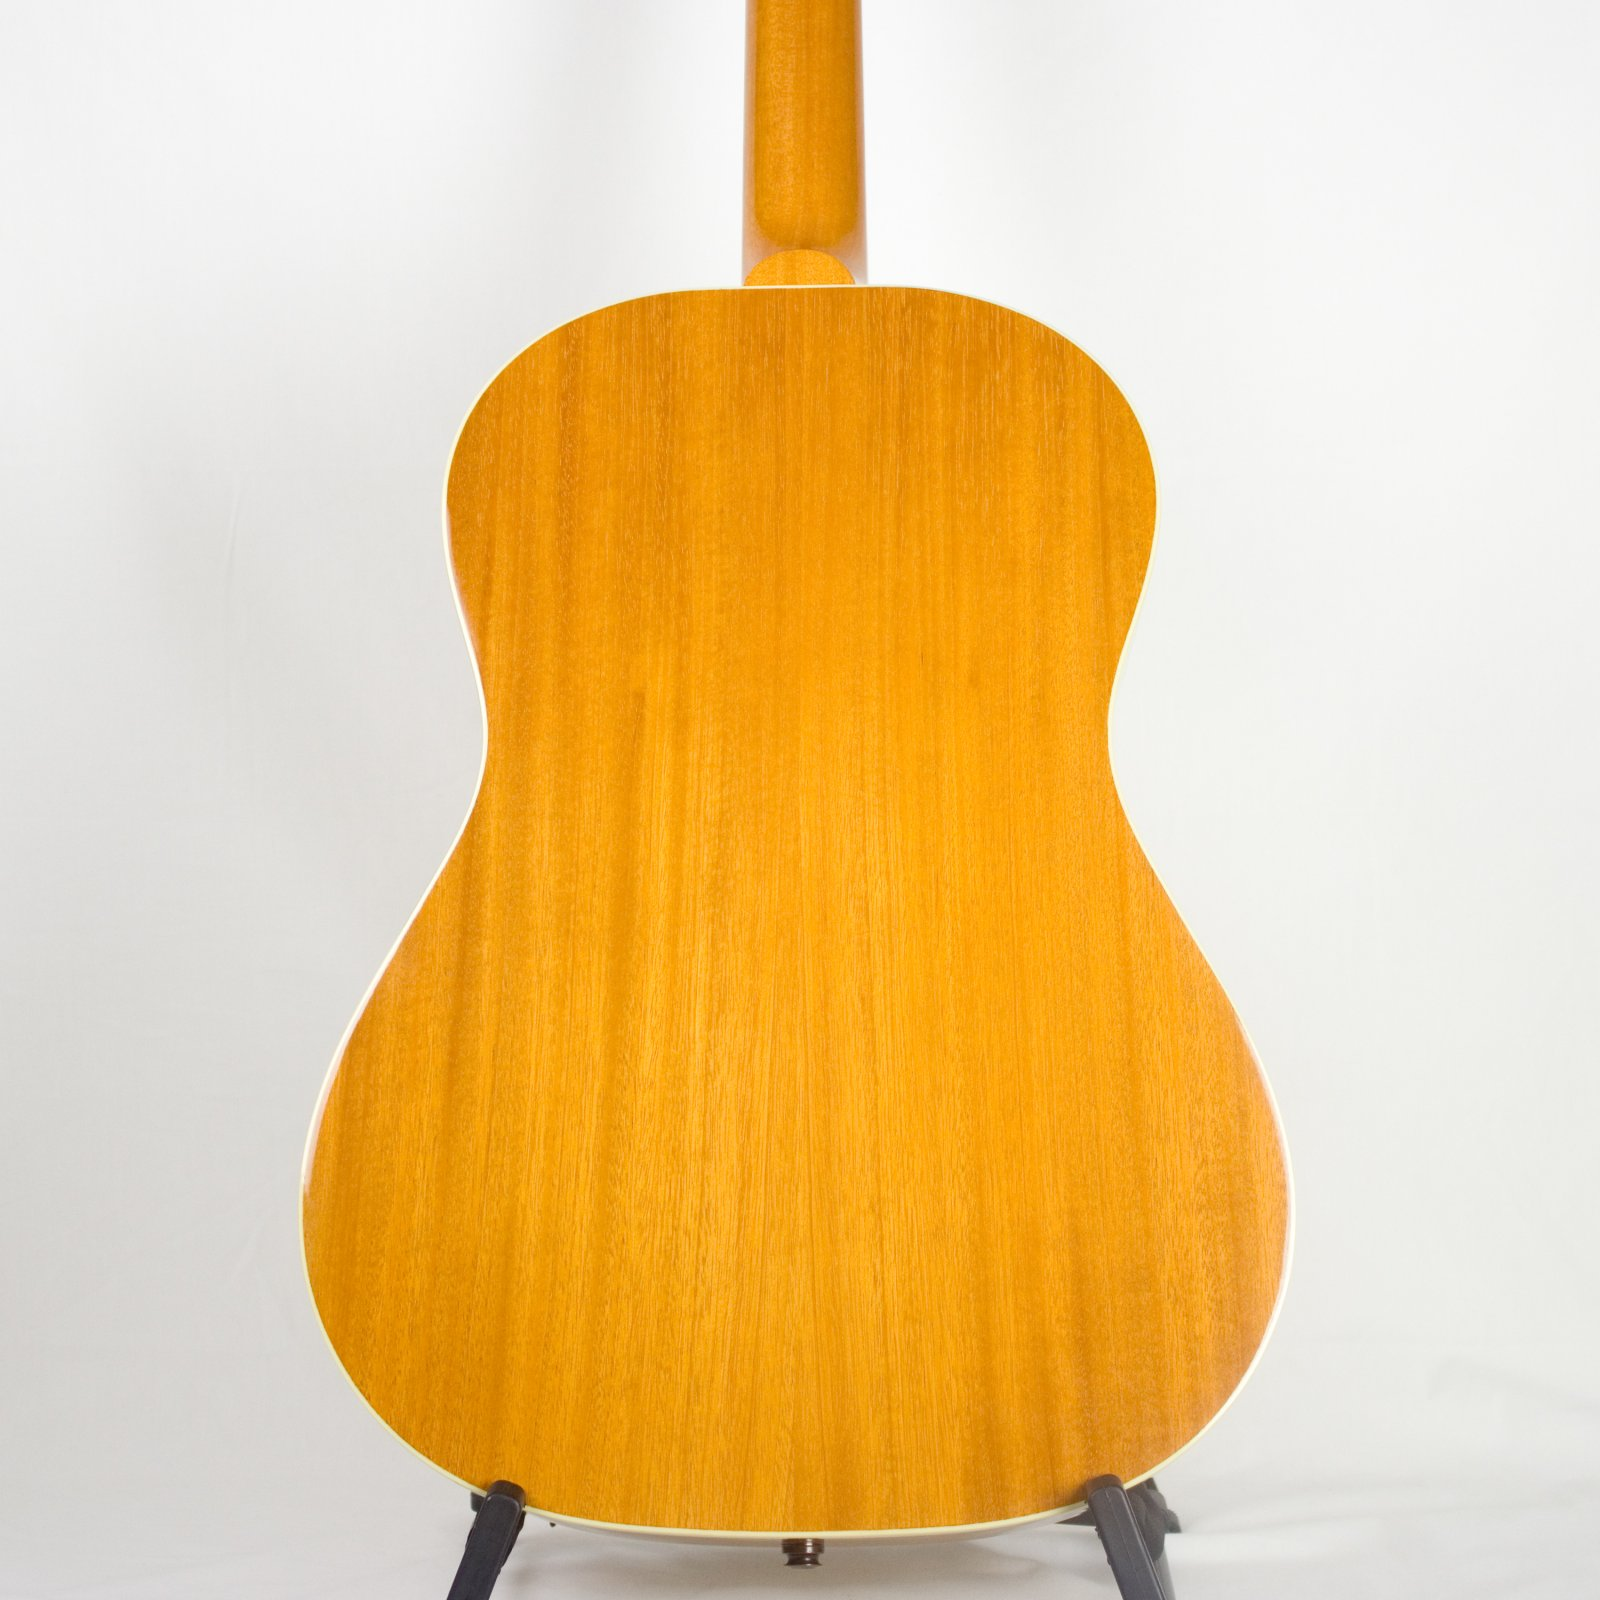 Mahogany for a warm-balanced tone